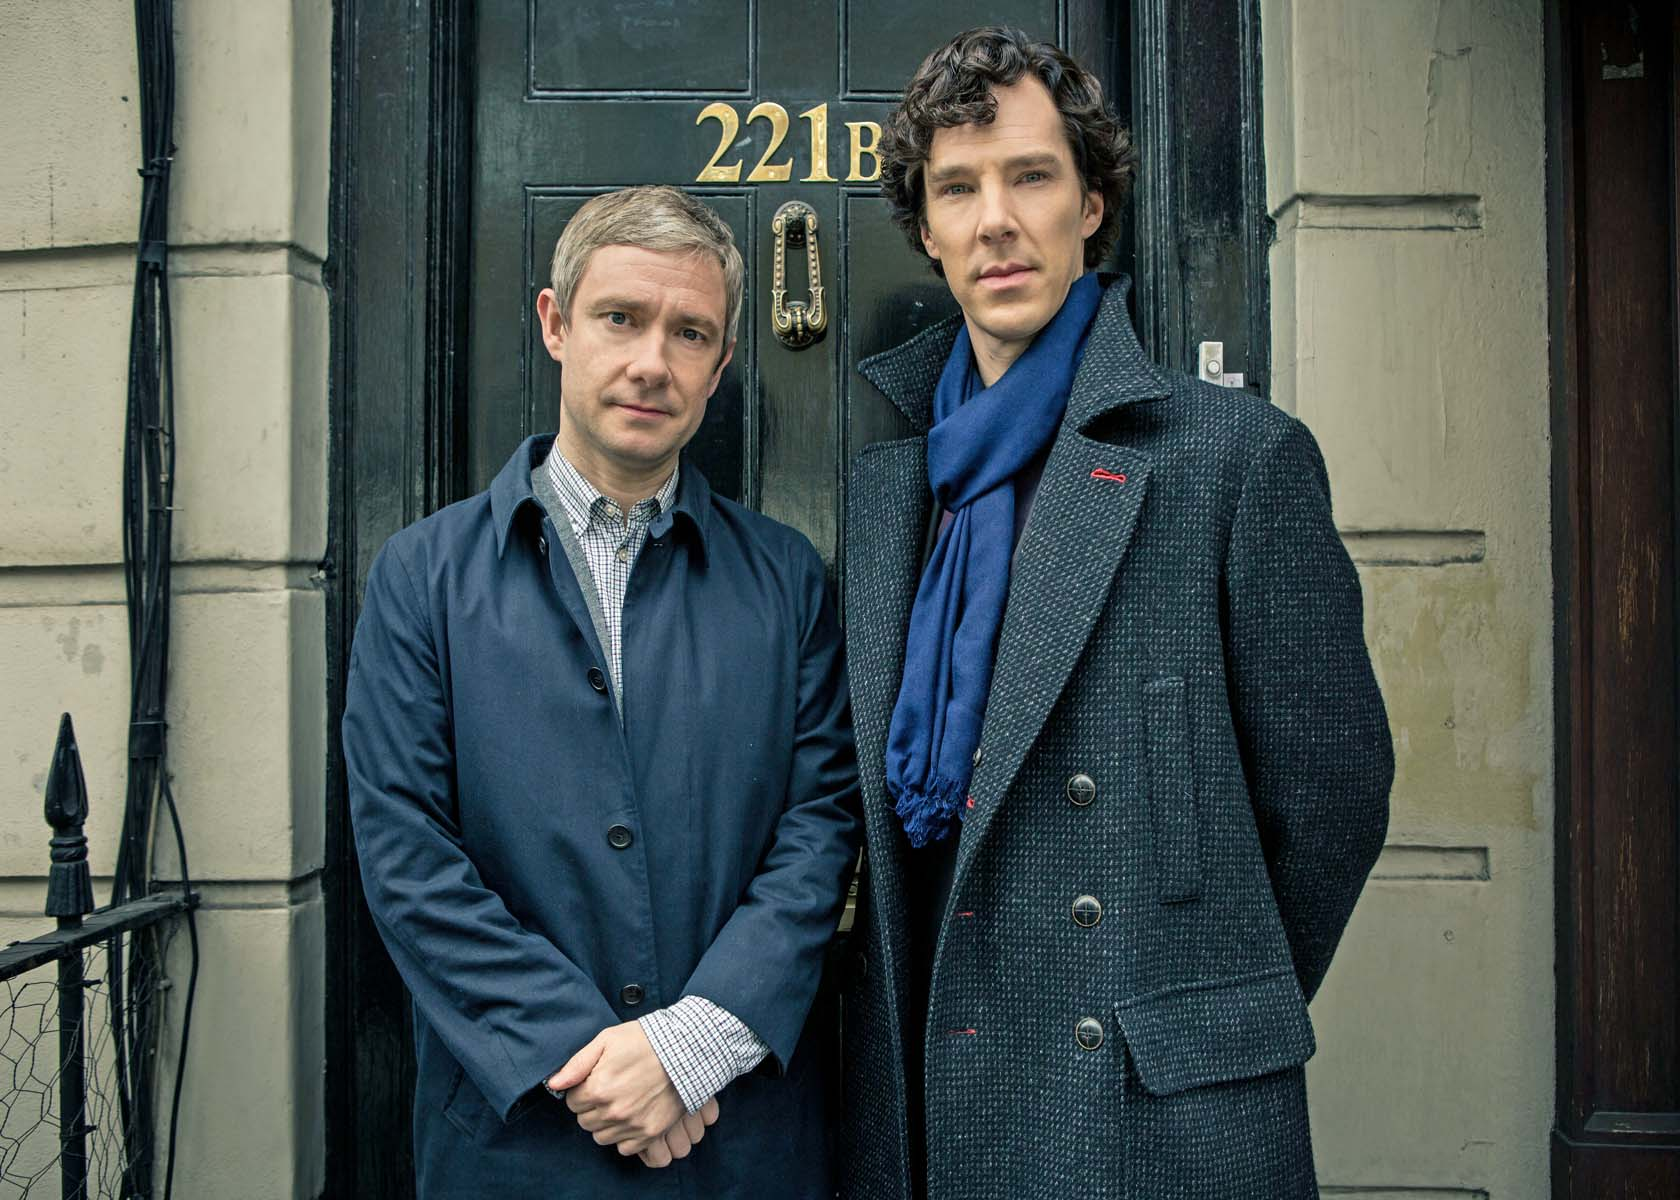 Shown from L-R: Martin Freeman as Dr. John Watson and Benedict Cumberbatch as Sherlock Holmes (Photo Courtesy of Robert Viglasky/Hartswood Films for MASTERPIECE)